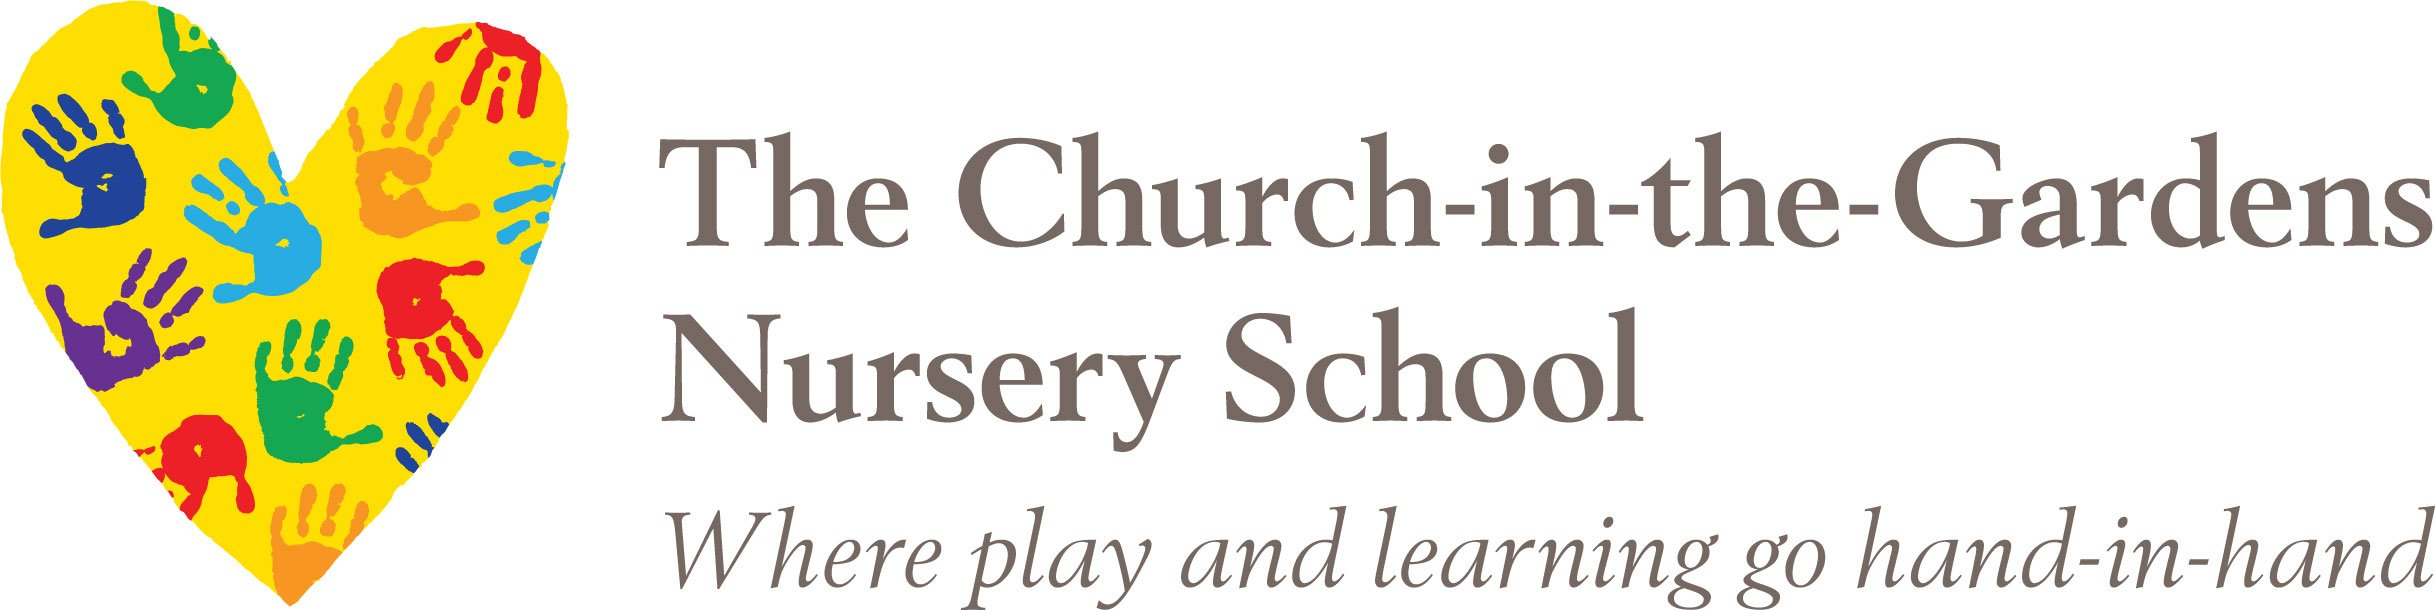 Church-in-the-Gardens Nursery School, The